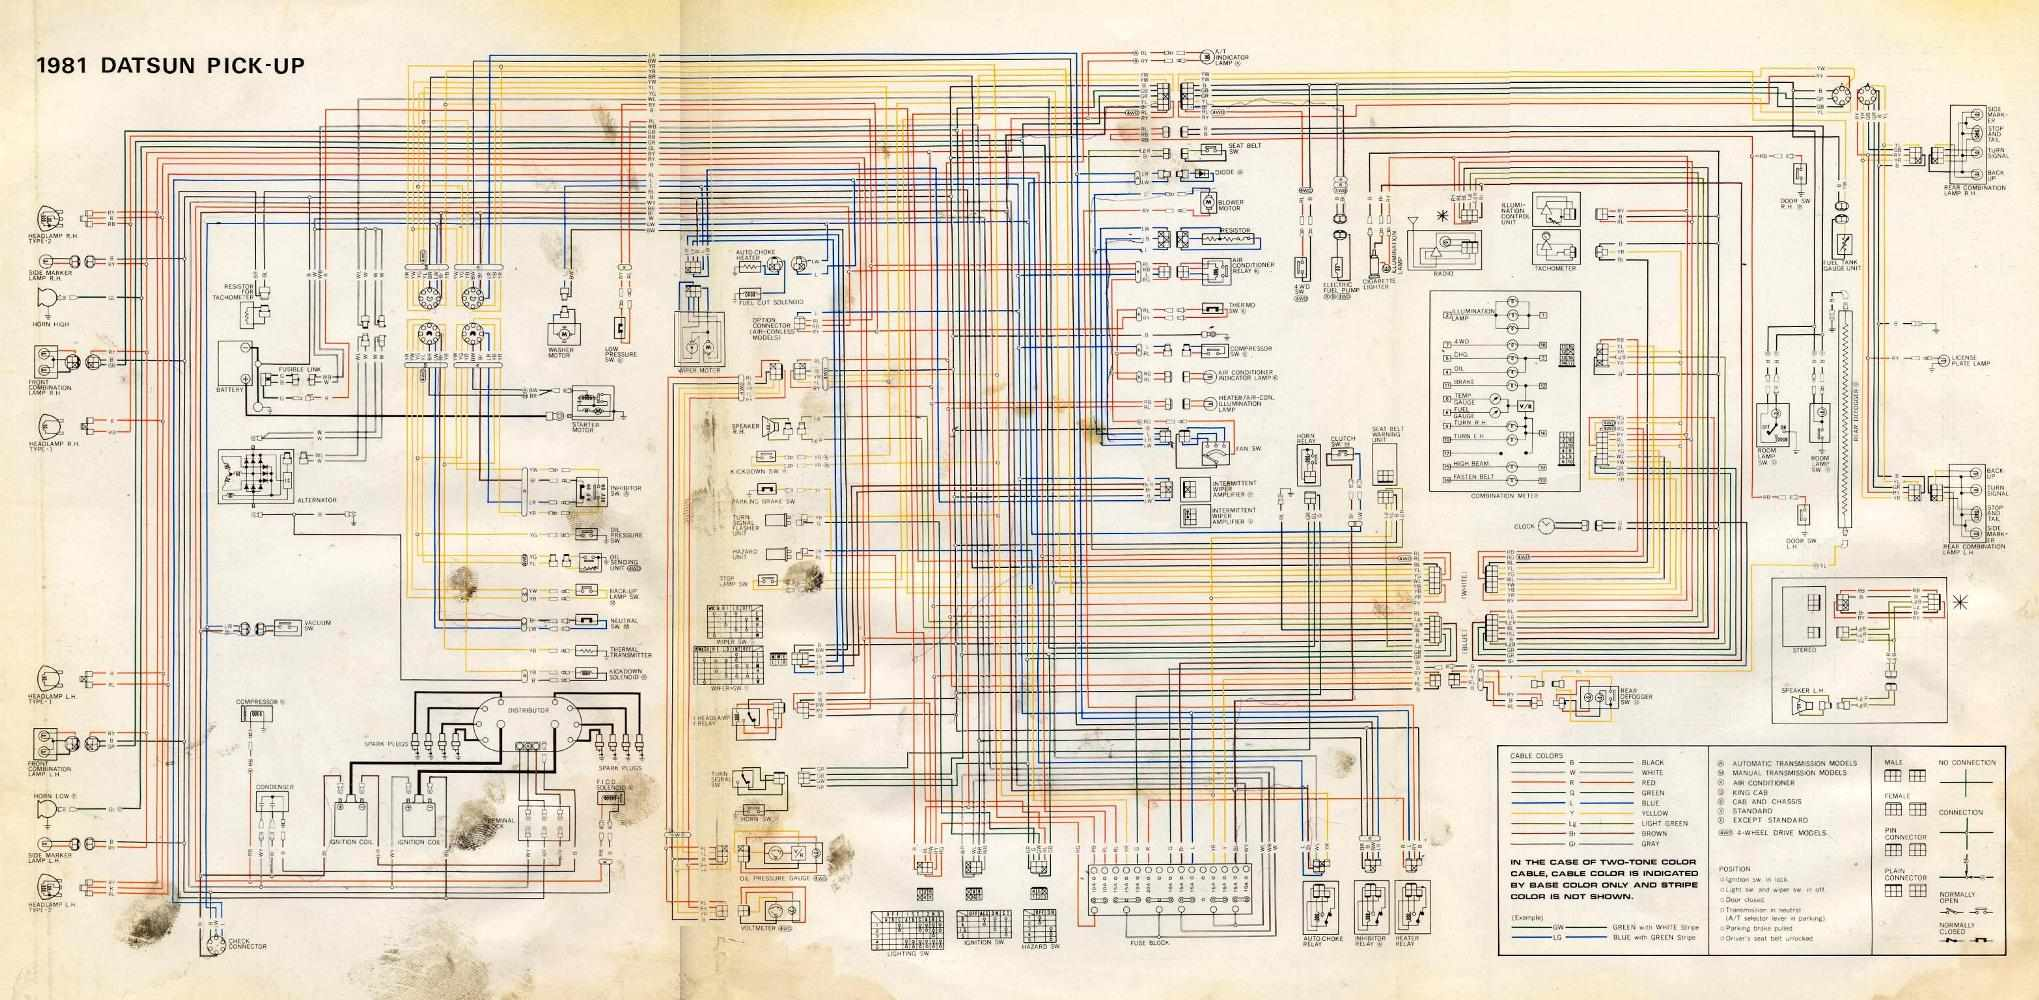 1977 Dodge Motorhome 440 Ignition Wiring Diagram Trusted Sportsman Schematic Diagrams Pickup